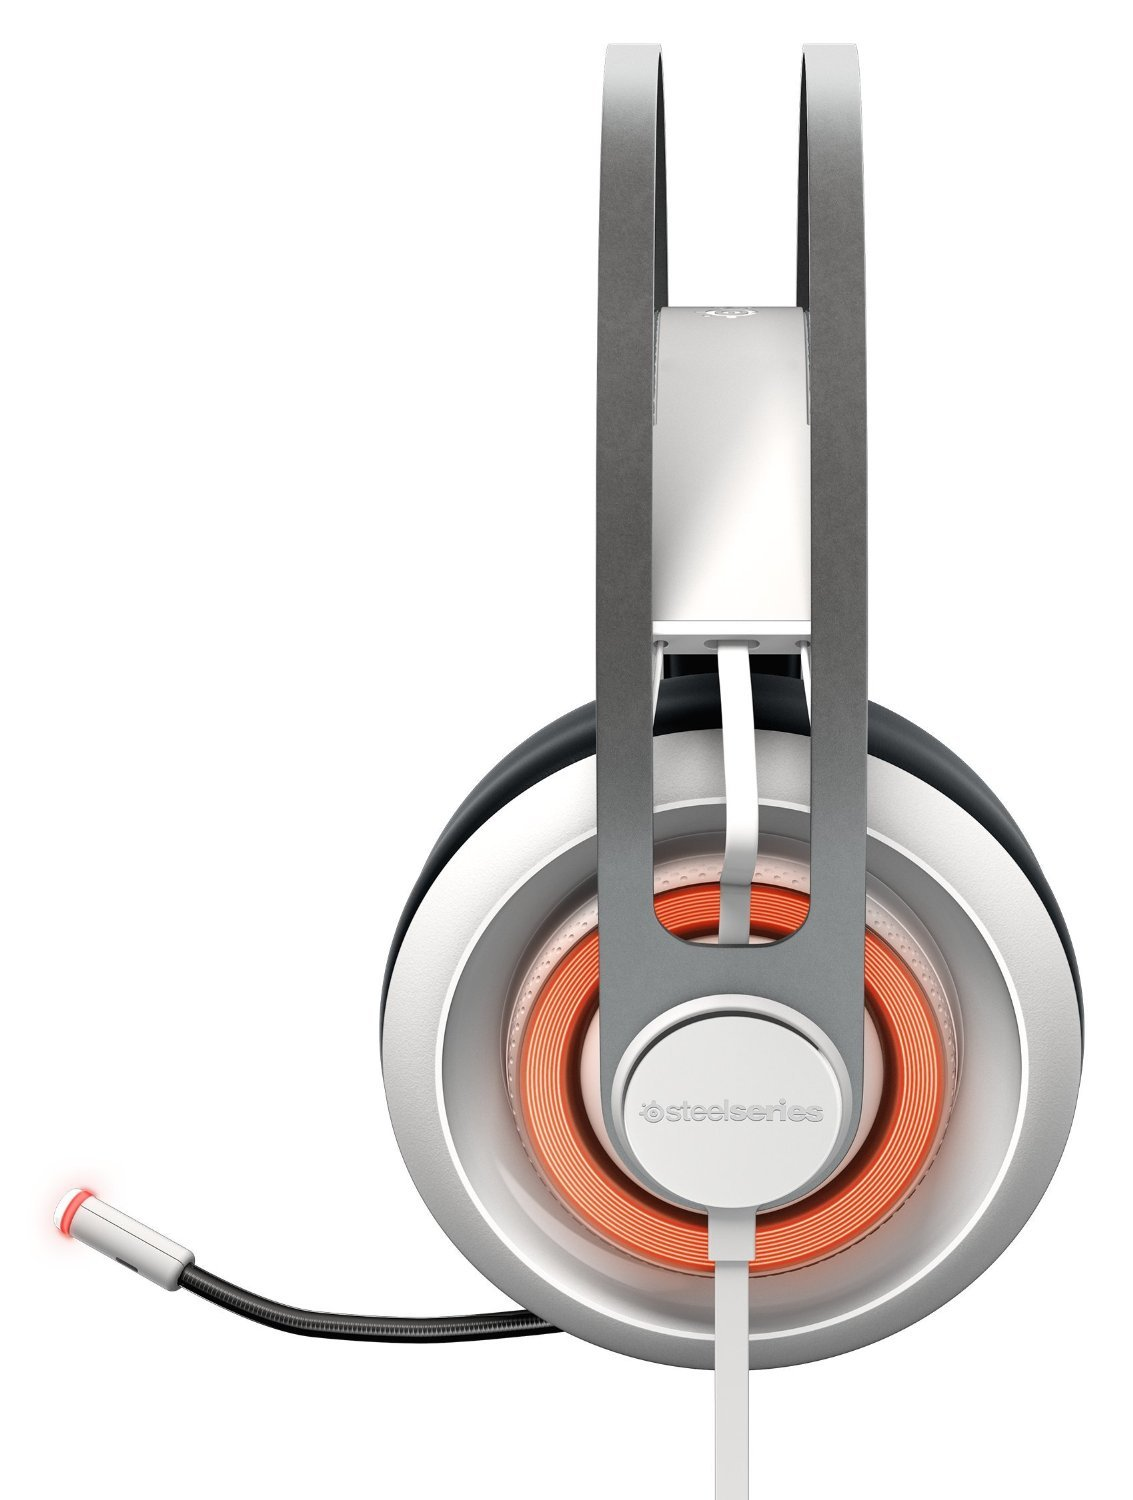 Steel Series Siberia 650 Gaming Headset - White for PC Games image